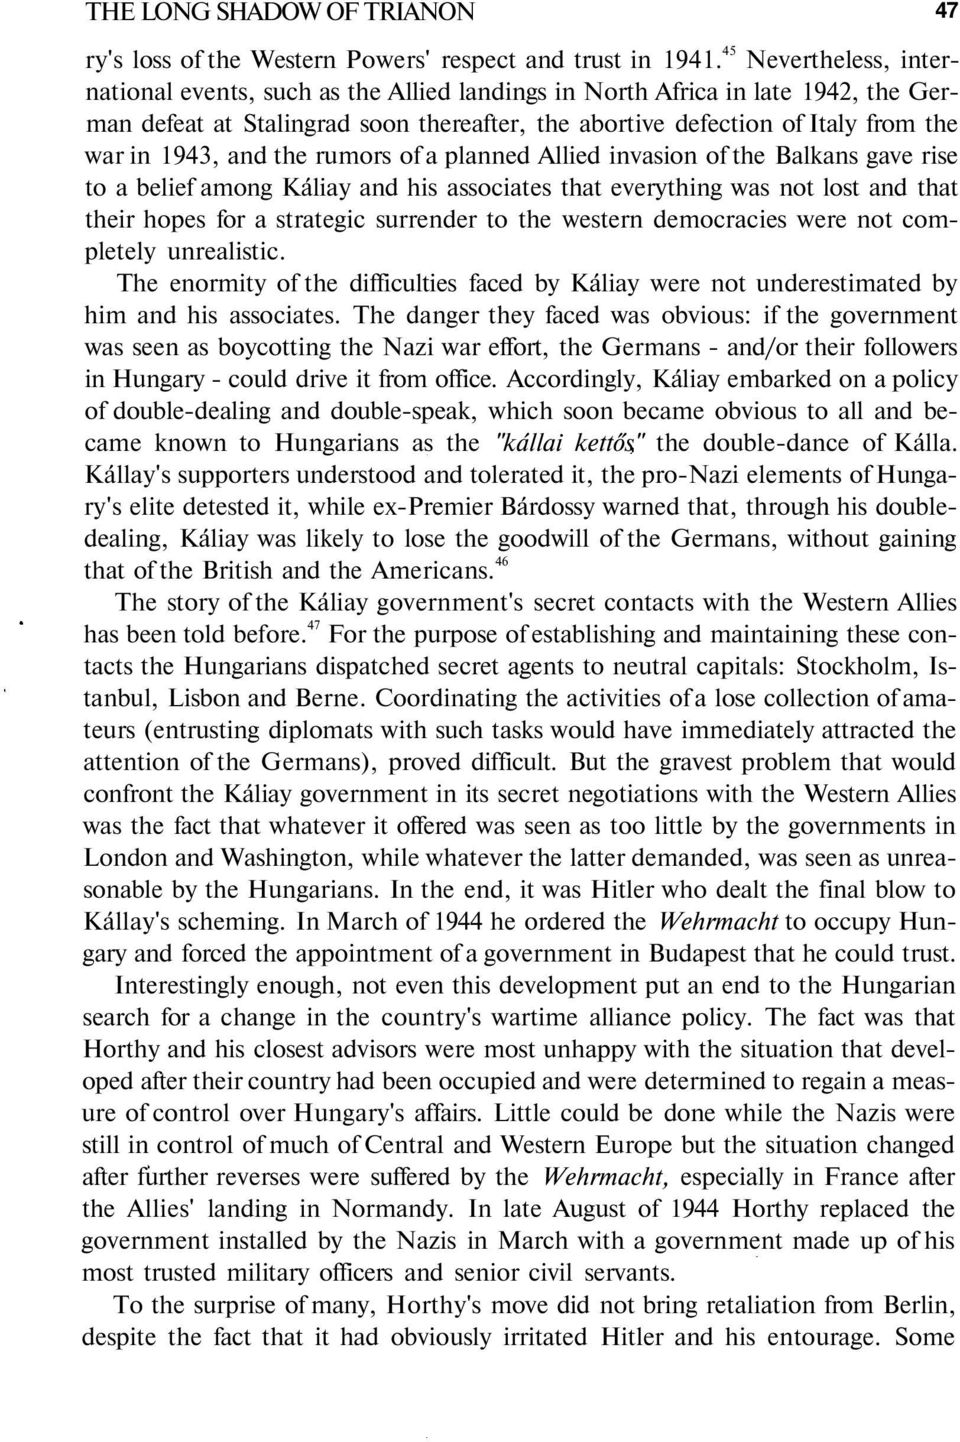 and the rumors of a planned Allied invasion of the Balkans gave rise to a belief among Káliay and his associates that everything was not lost and that their hopes for a strategic surrender to the